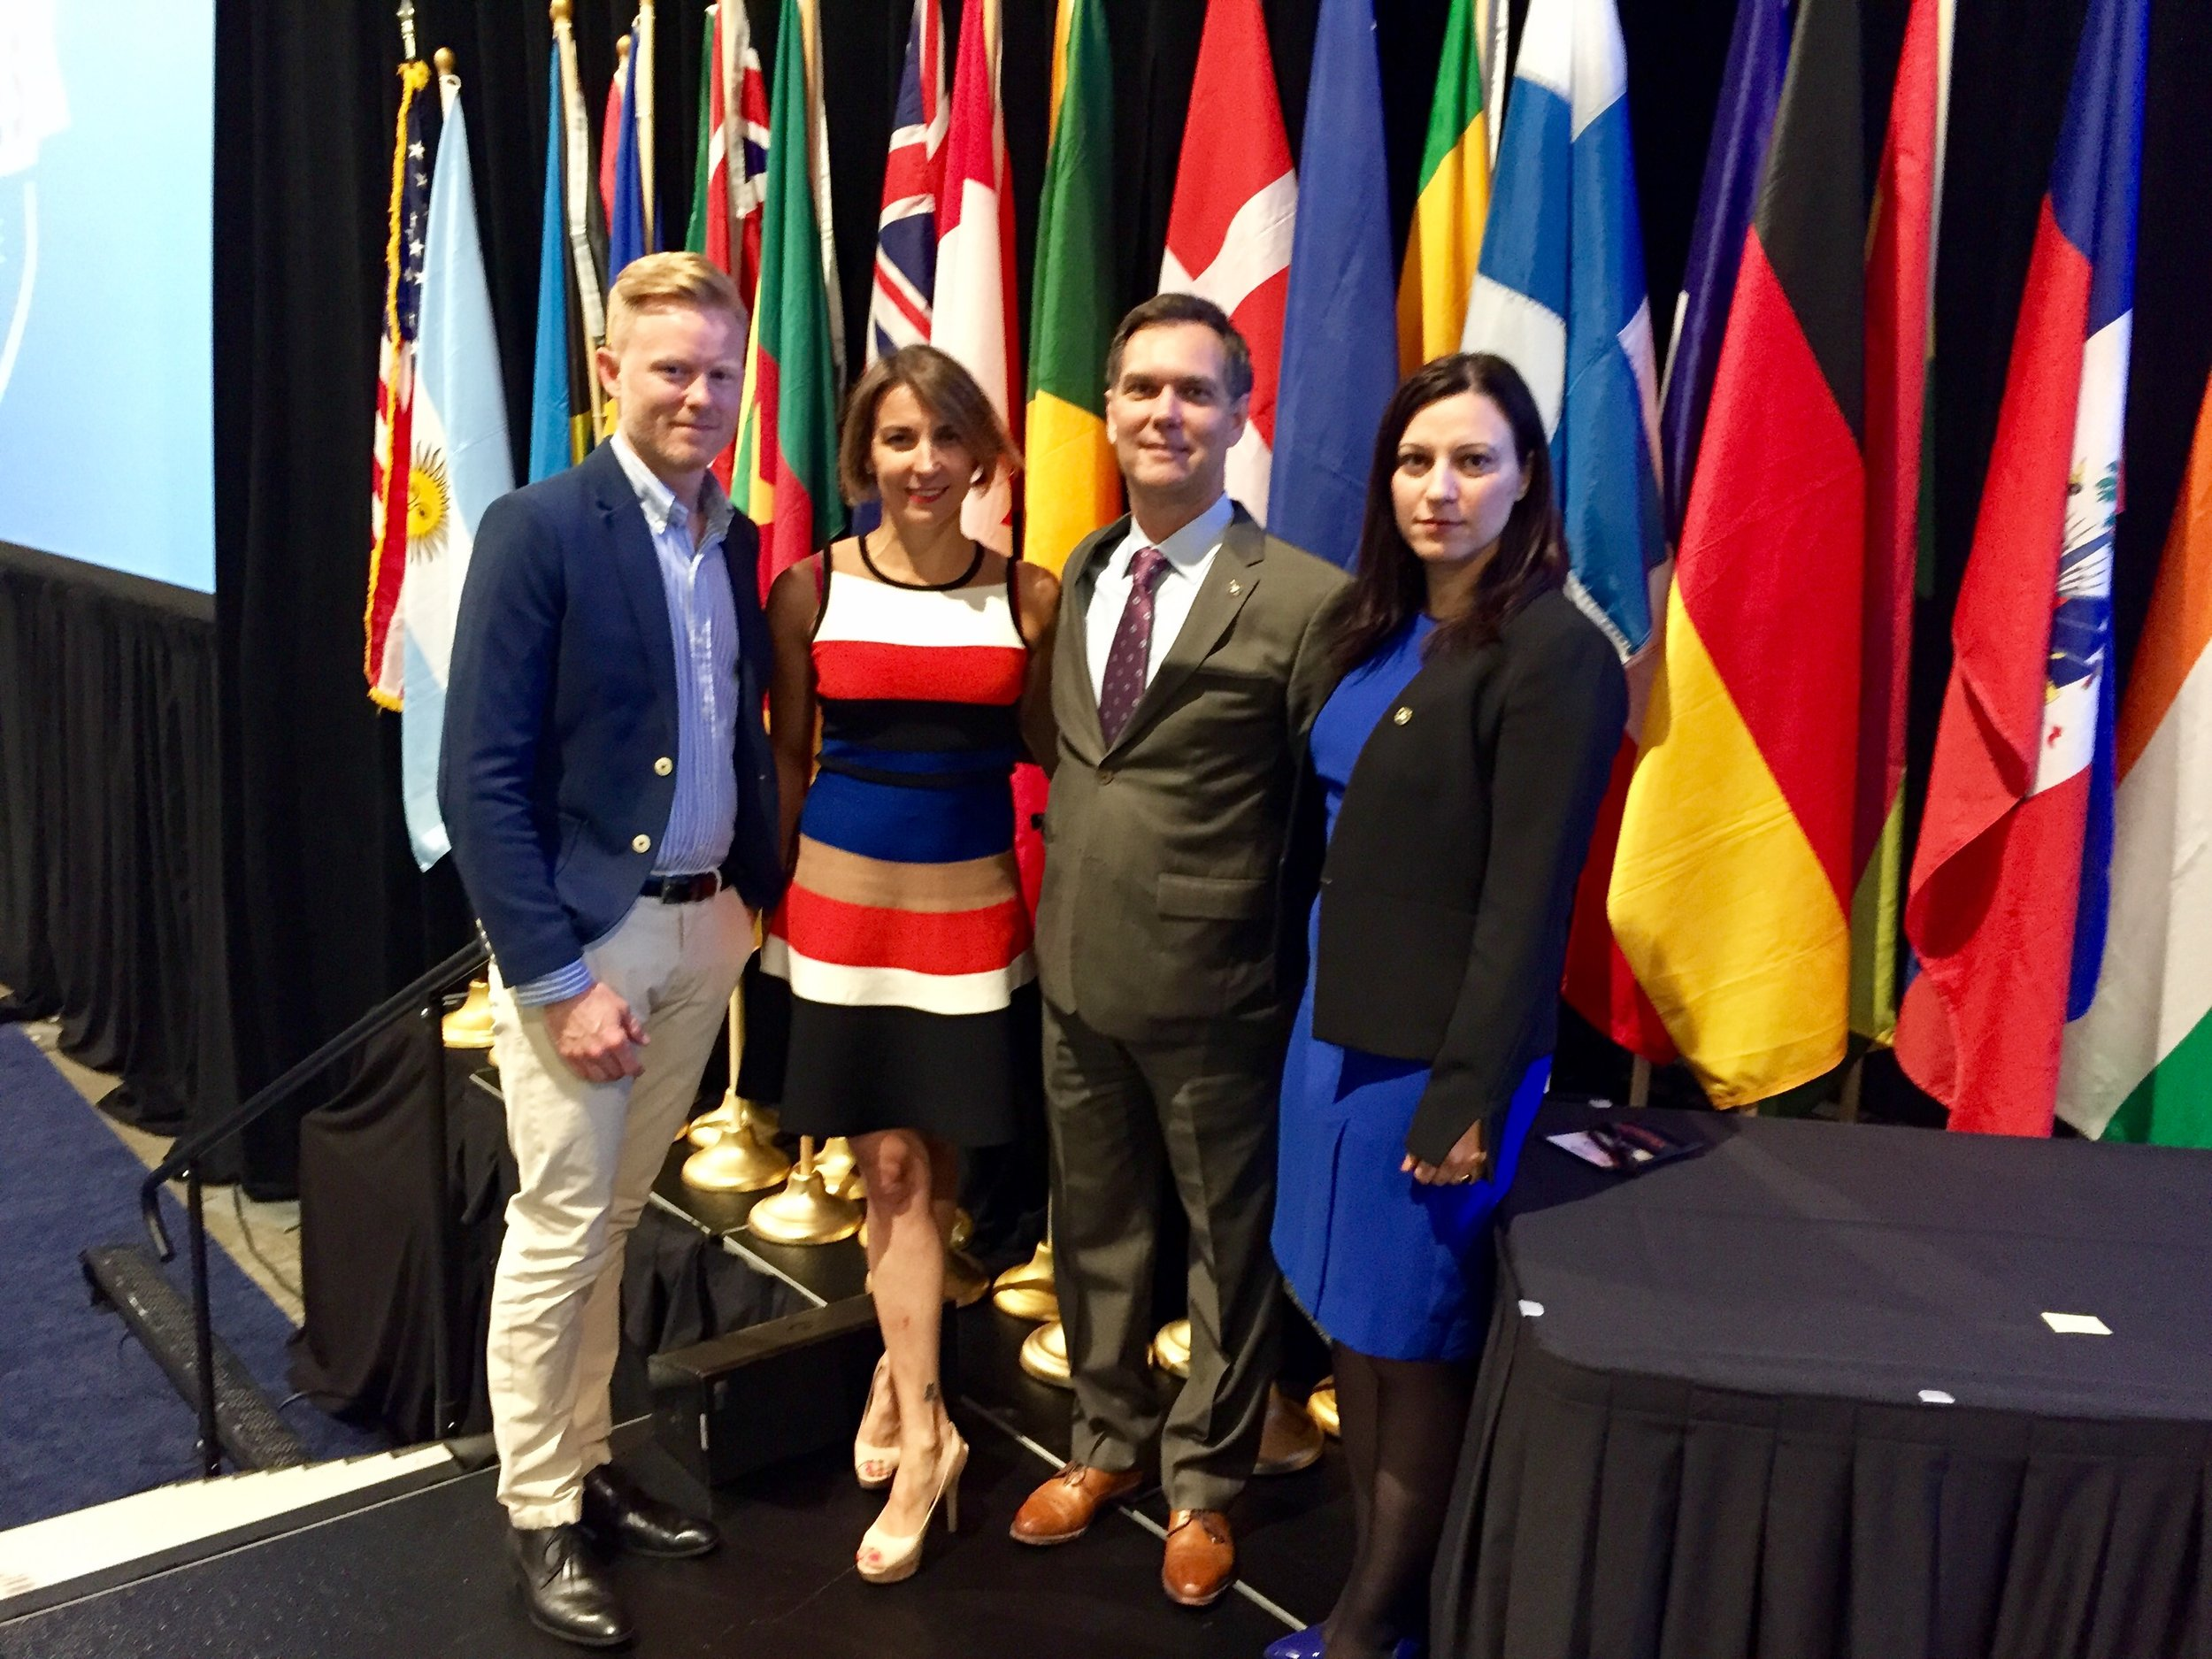 Danish Chapter Leaders. From left to right, Thomas Boegballe, CFE, Dr. Nadia Dosio, CFE, Nicoleta Mehlsen, CFE, with ACFE Vice President and Program Director Bruce Dorris, CFE